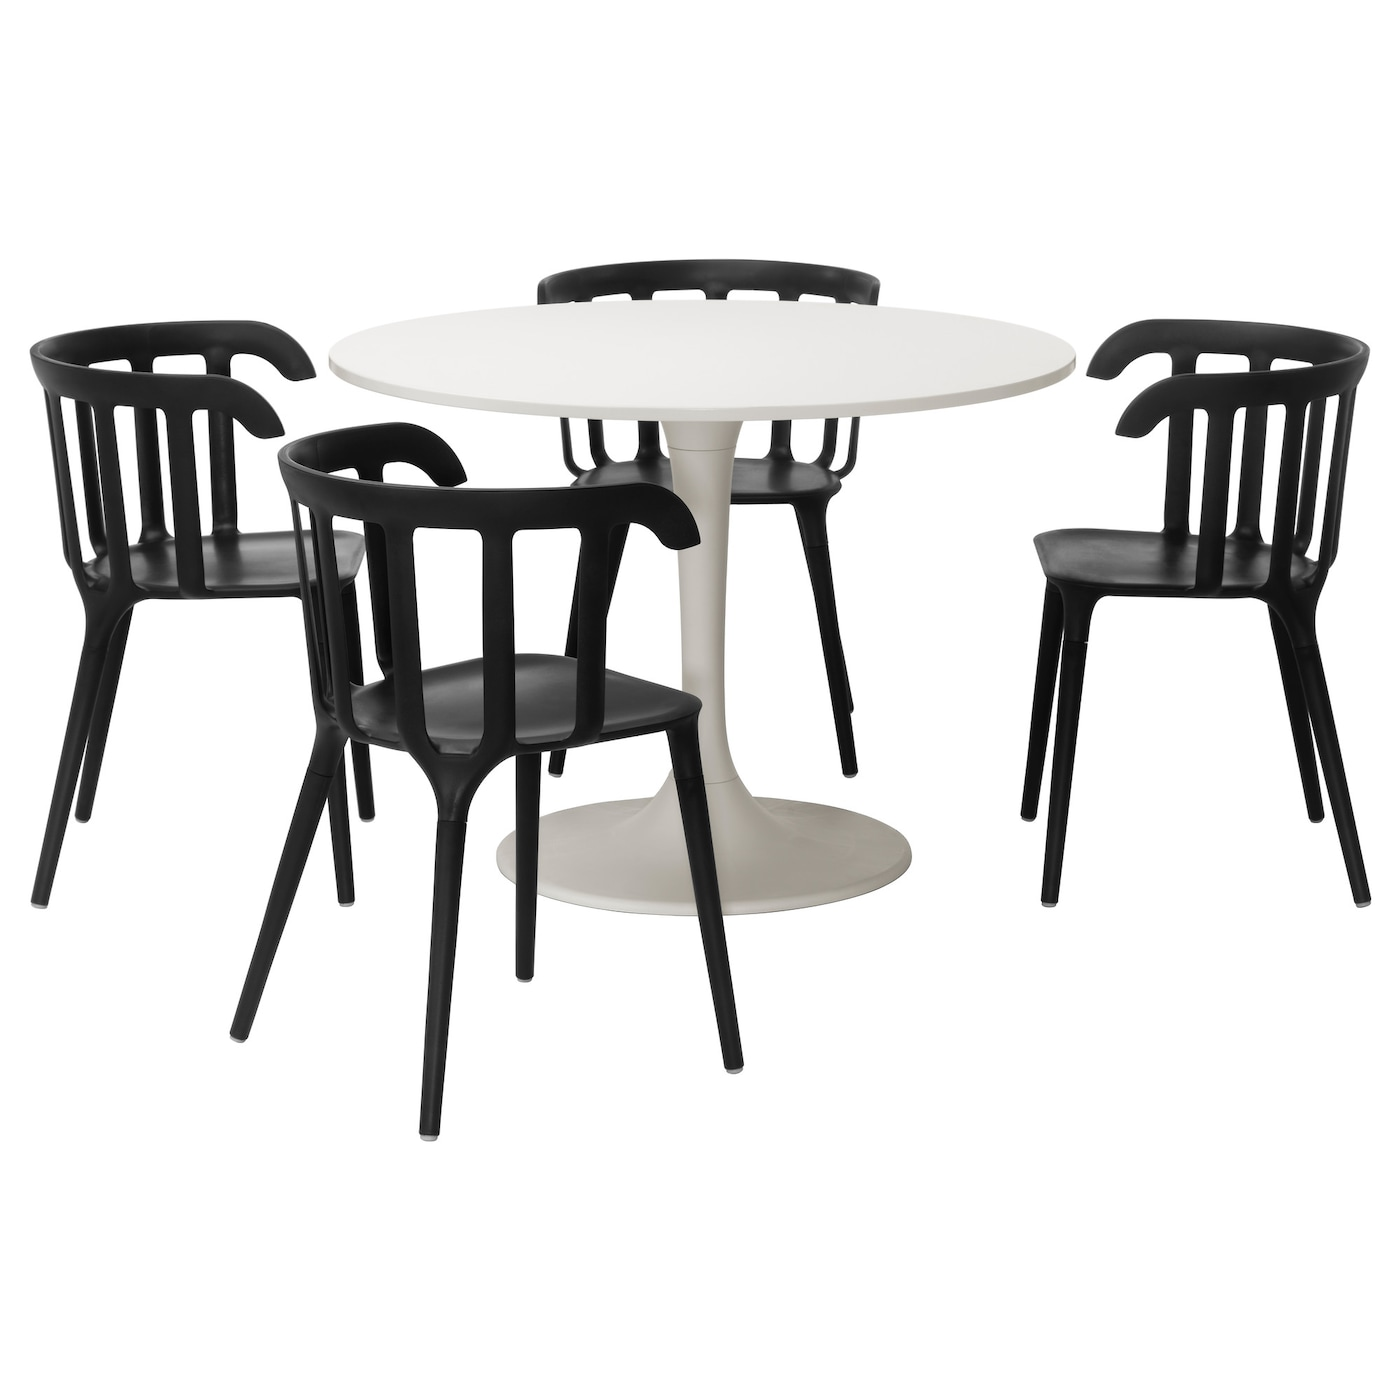 Docksta ikea ps 2012 table and 4 chairs white black 105 cm for Ikea dining table and chairs set